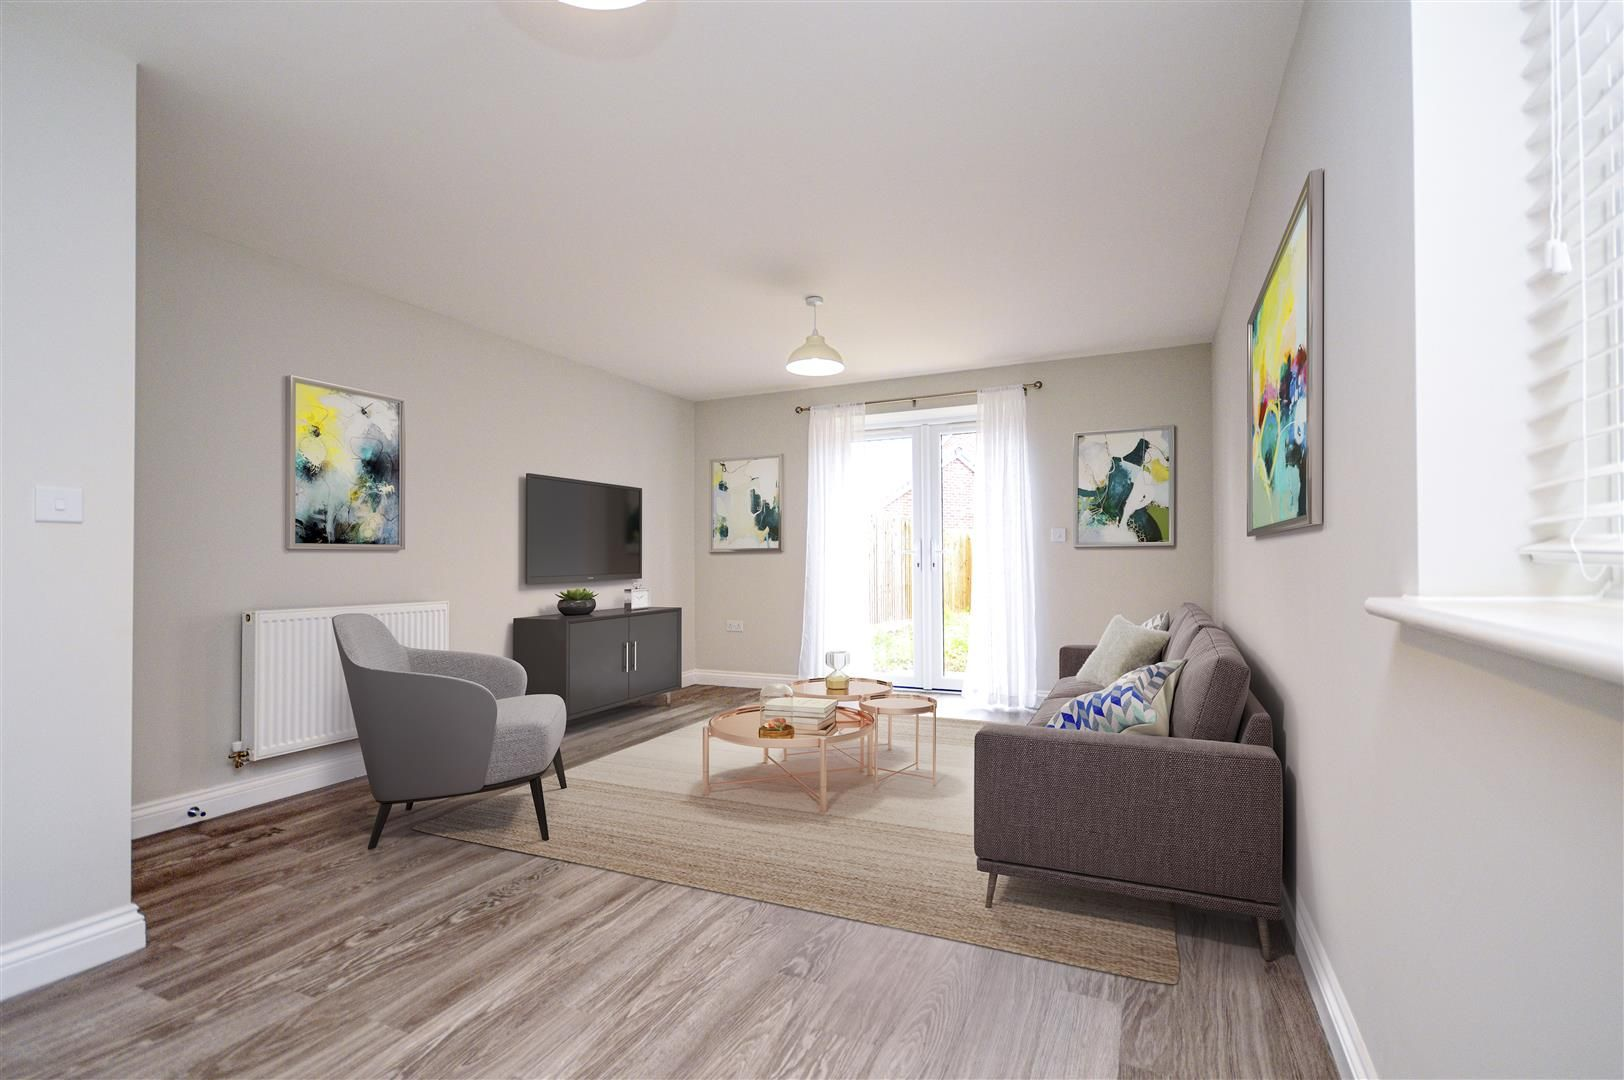 2 bed semi-detached for sale in Kingstone 3